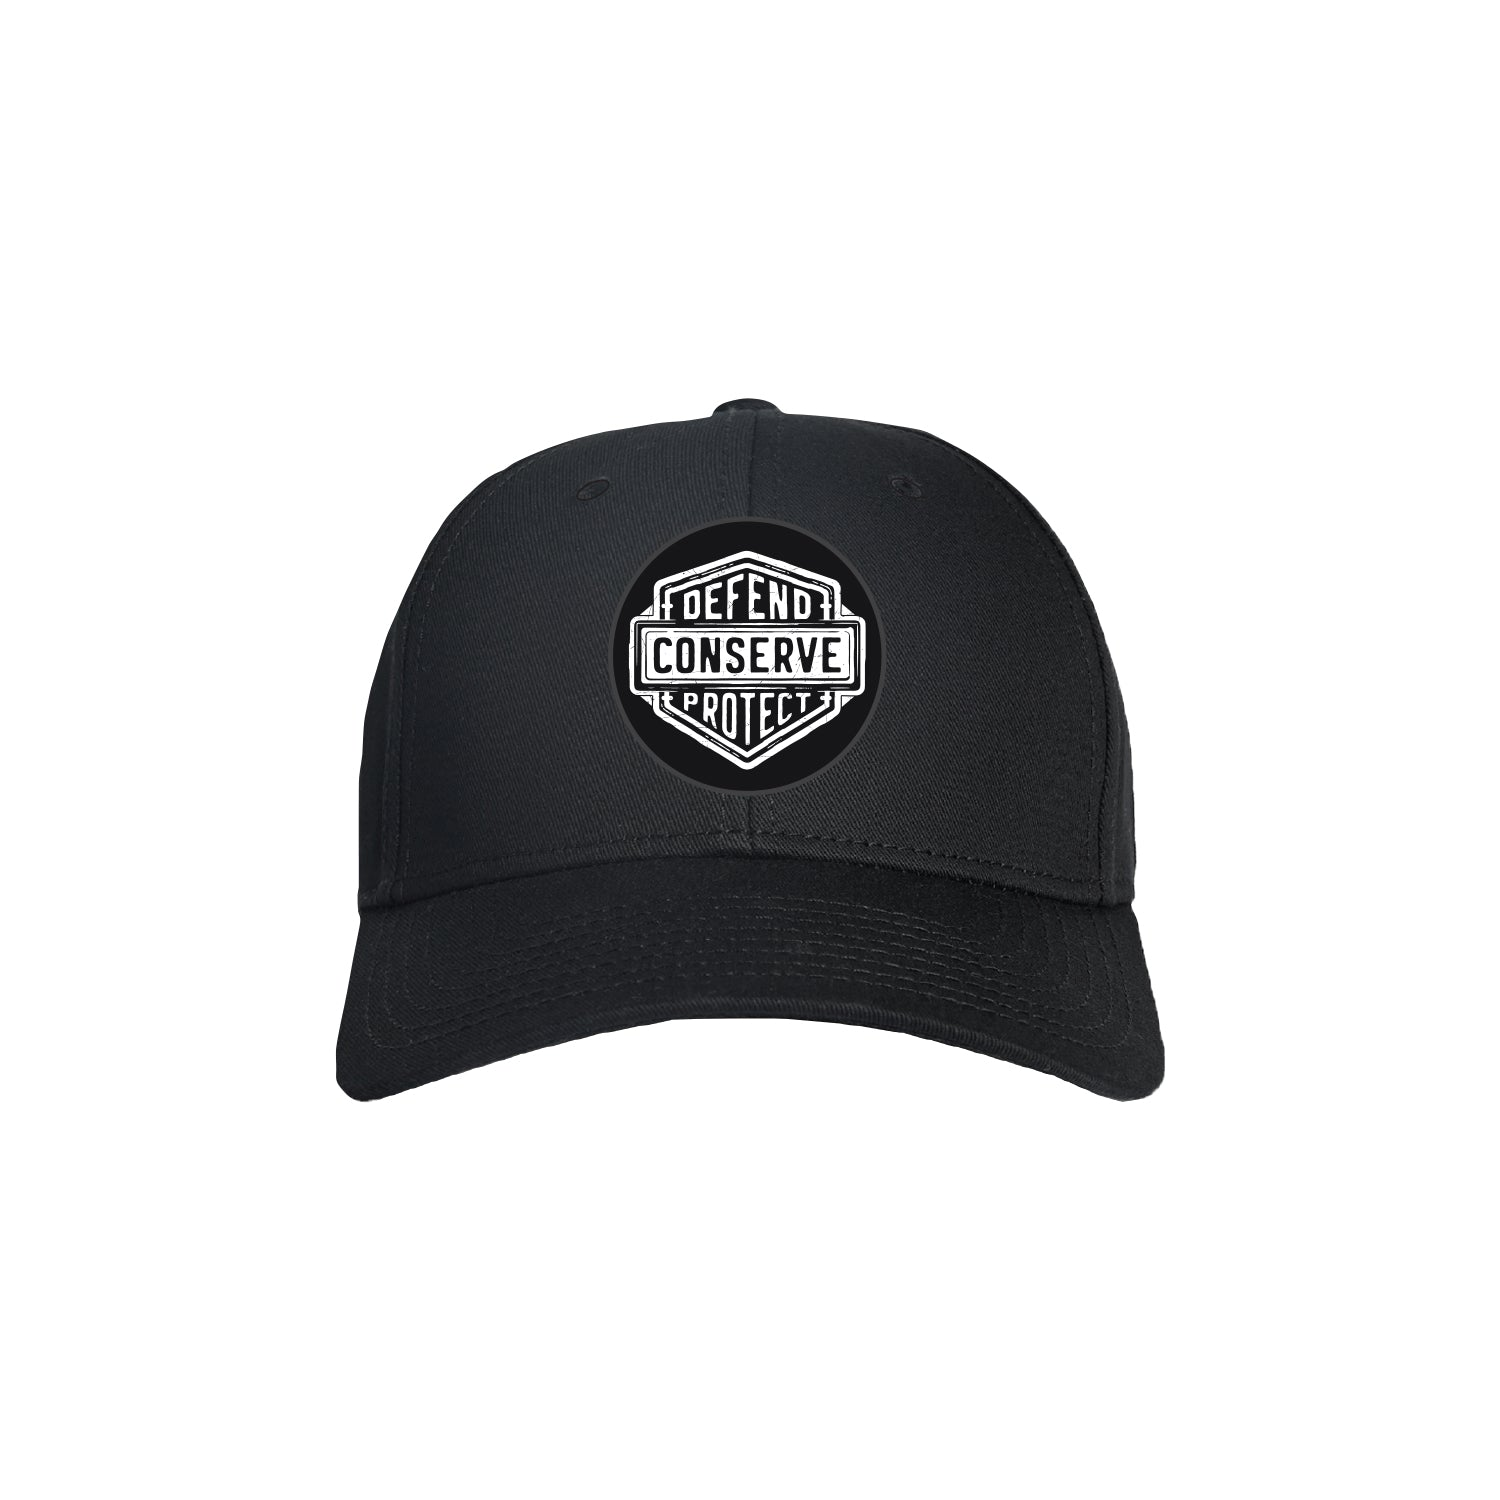 Sea Shepherd Stand Fast - Defend Conserve Protect Forever - Black Organic Cap, 6 Panel